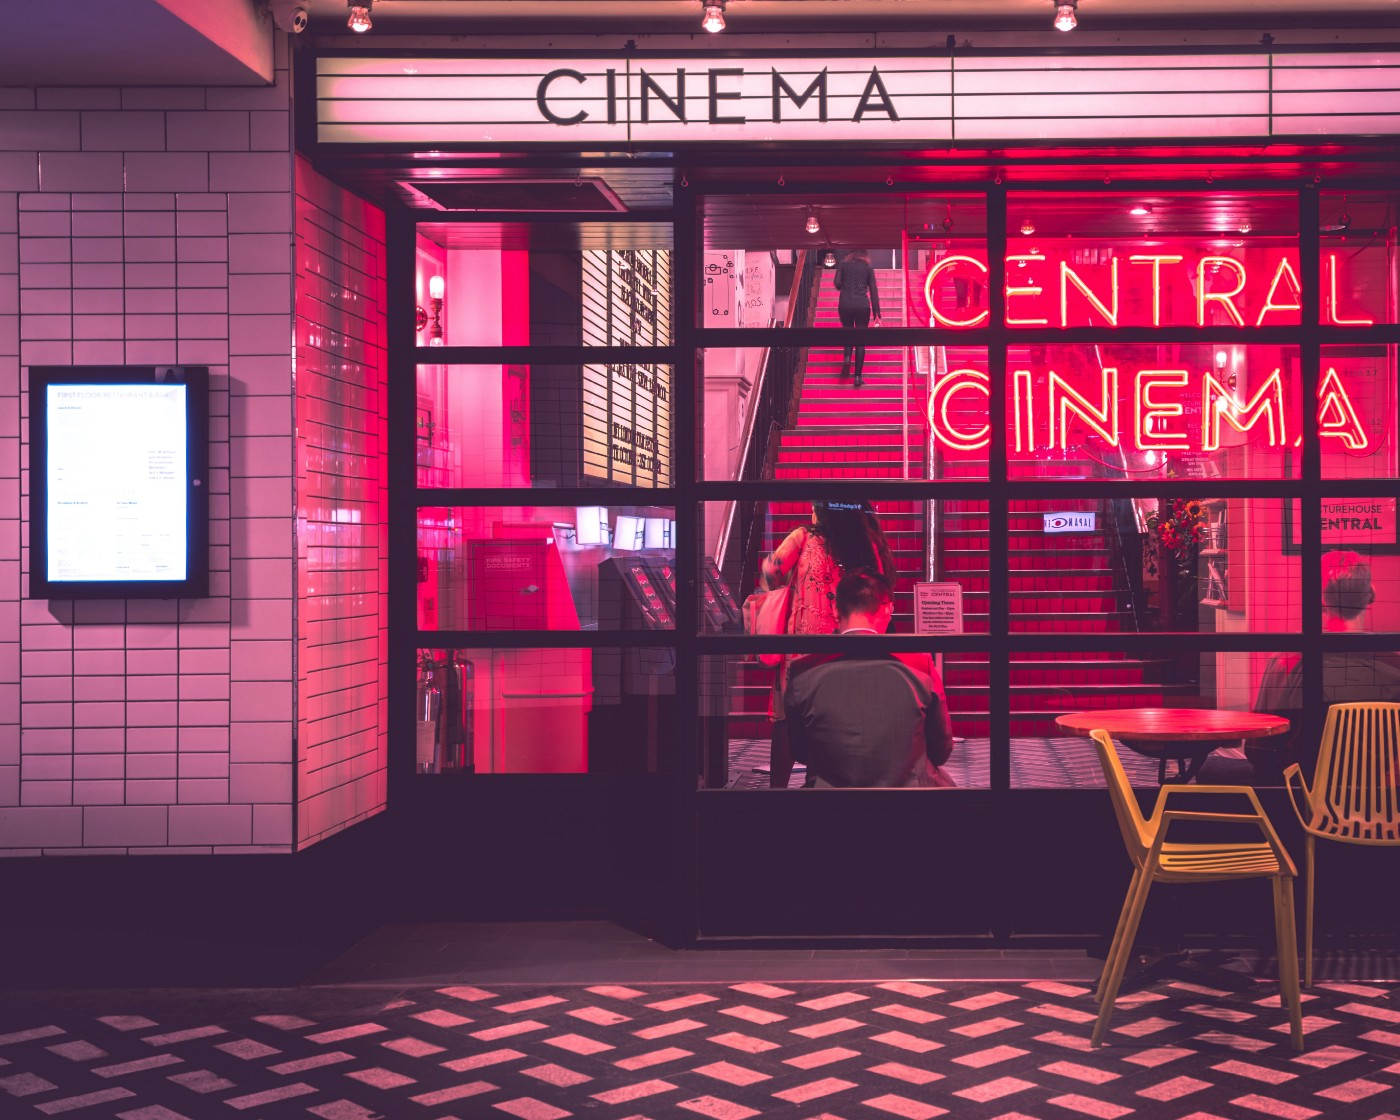 Image of a cinema in a pink hue